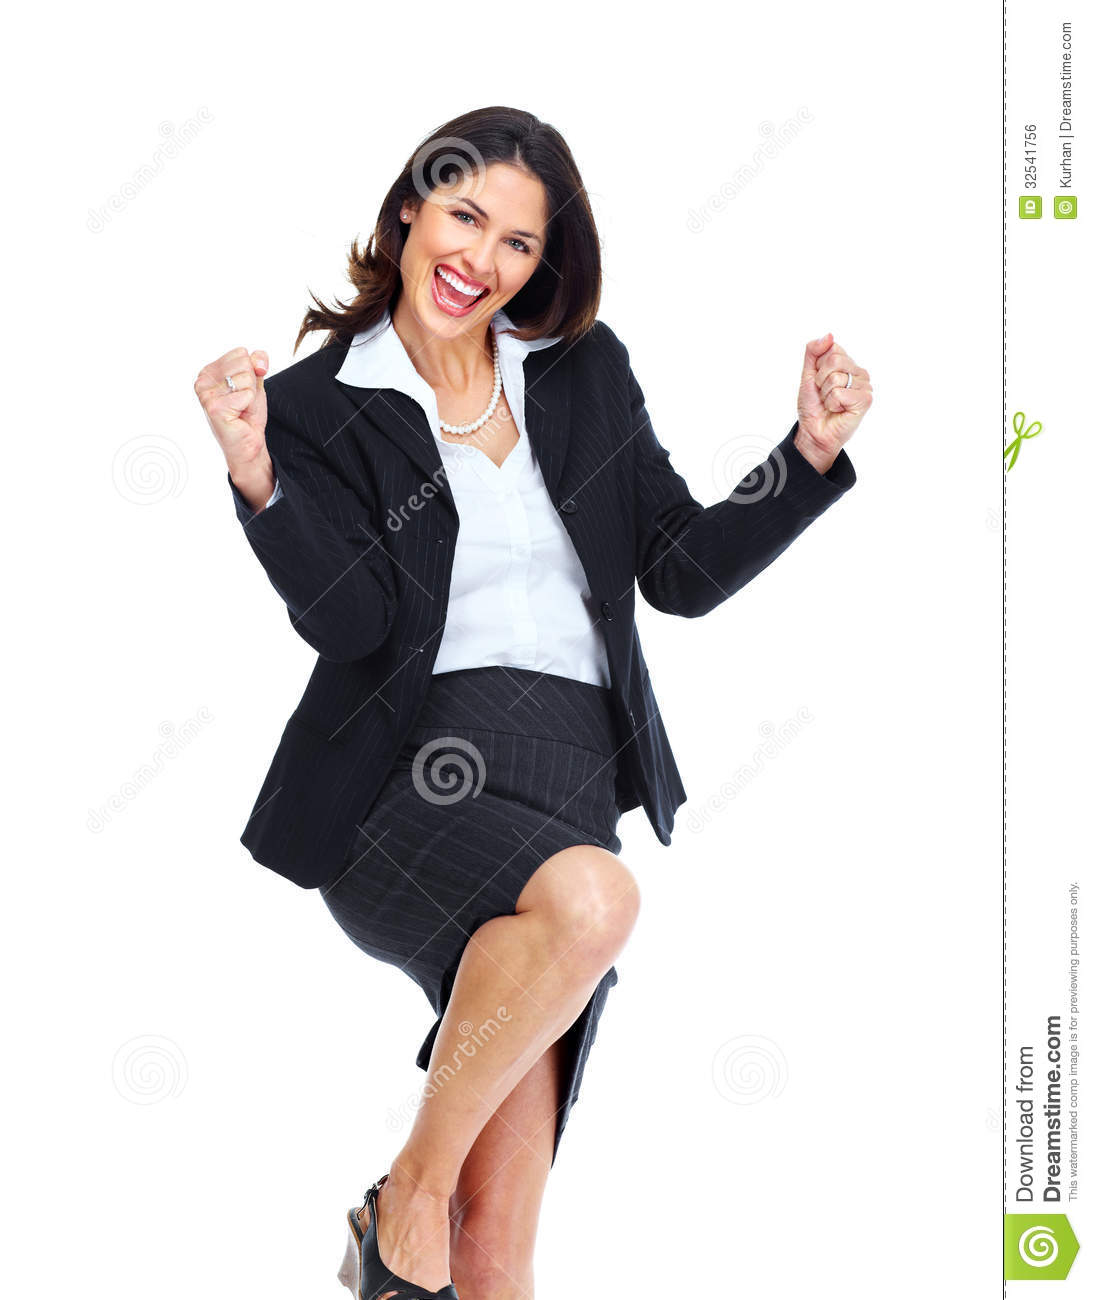 happy-business-woman-isolated-white-background-32541756.jpg